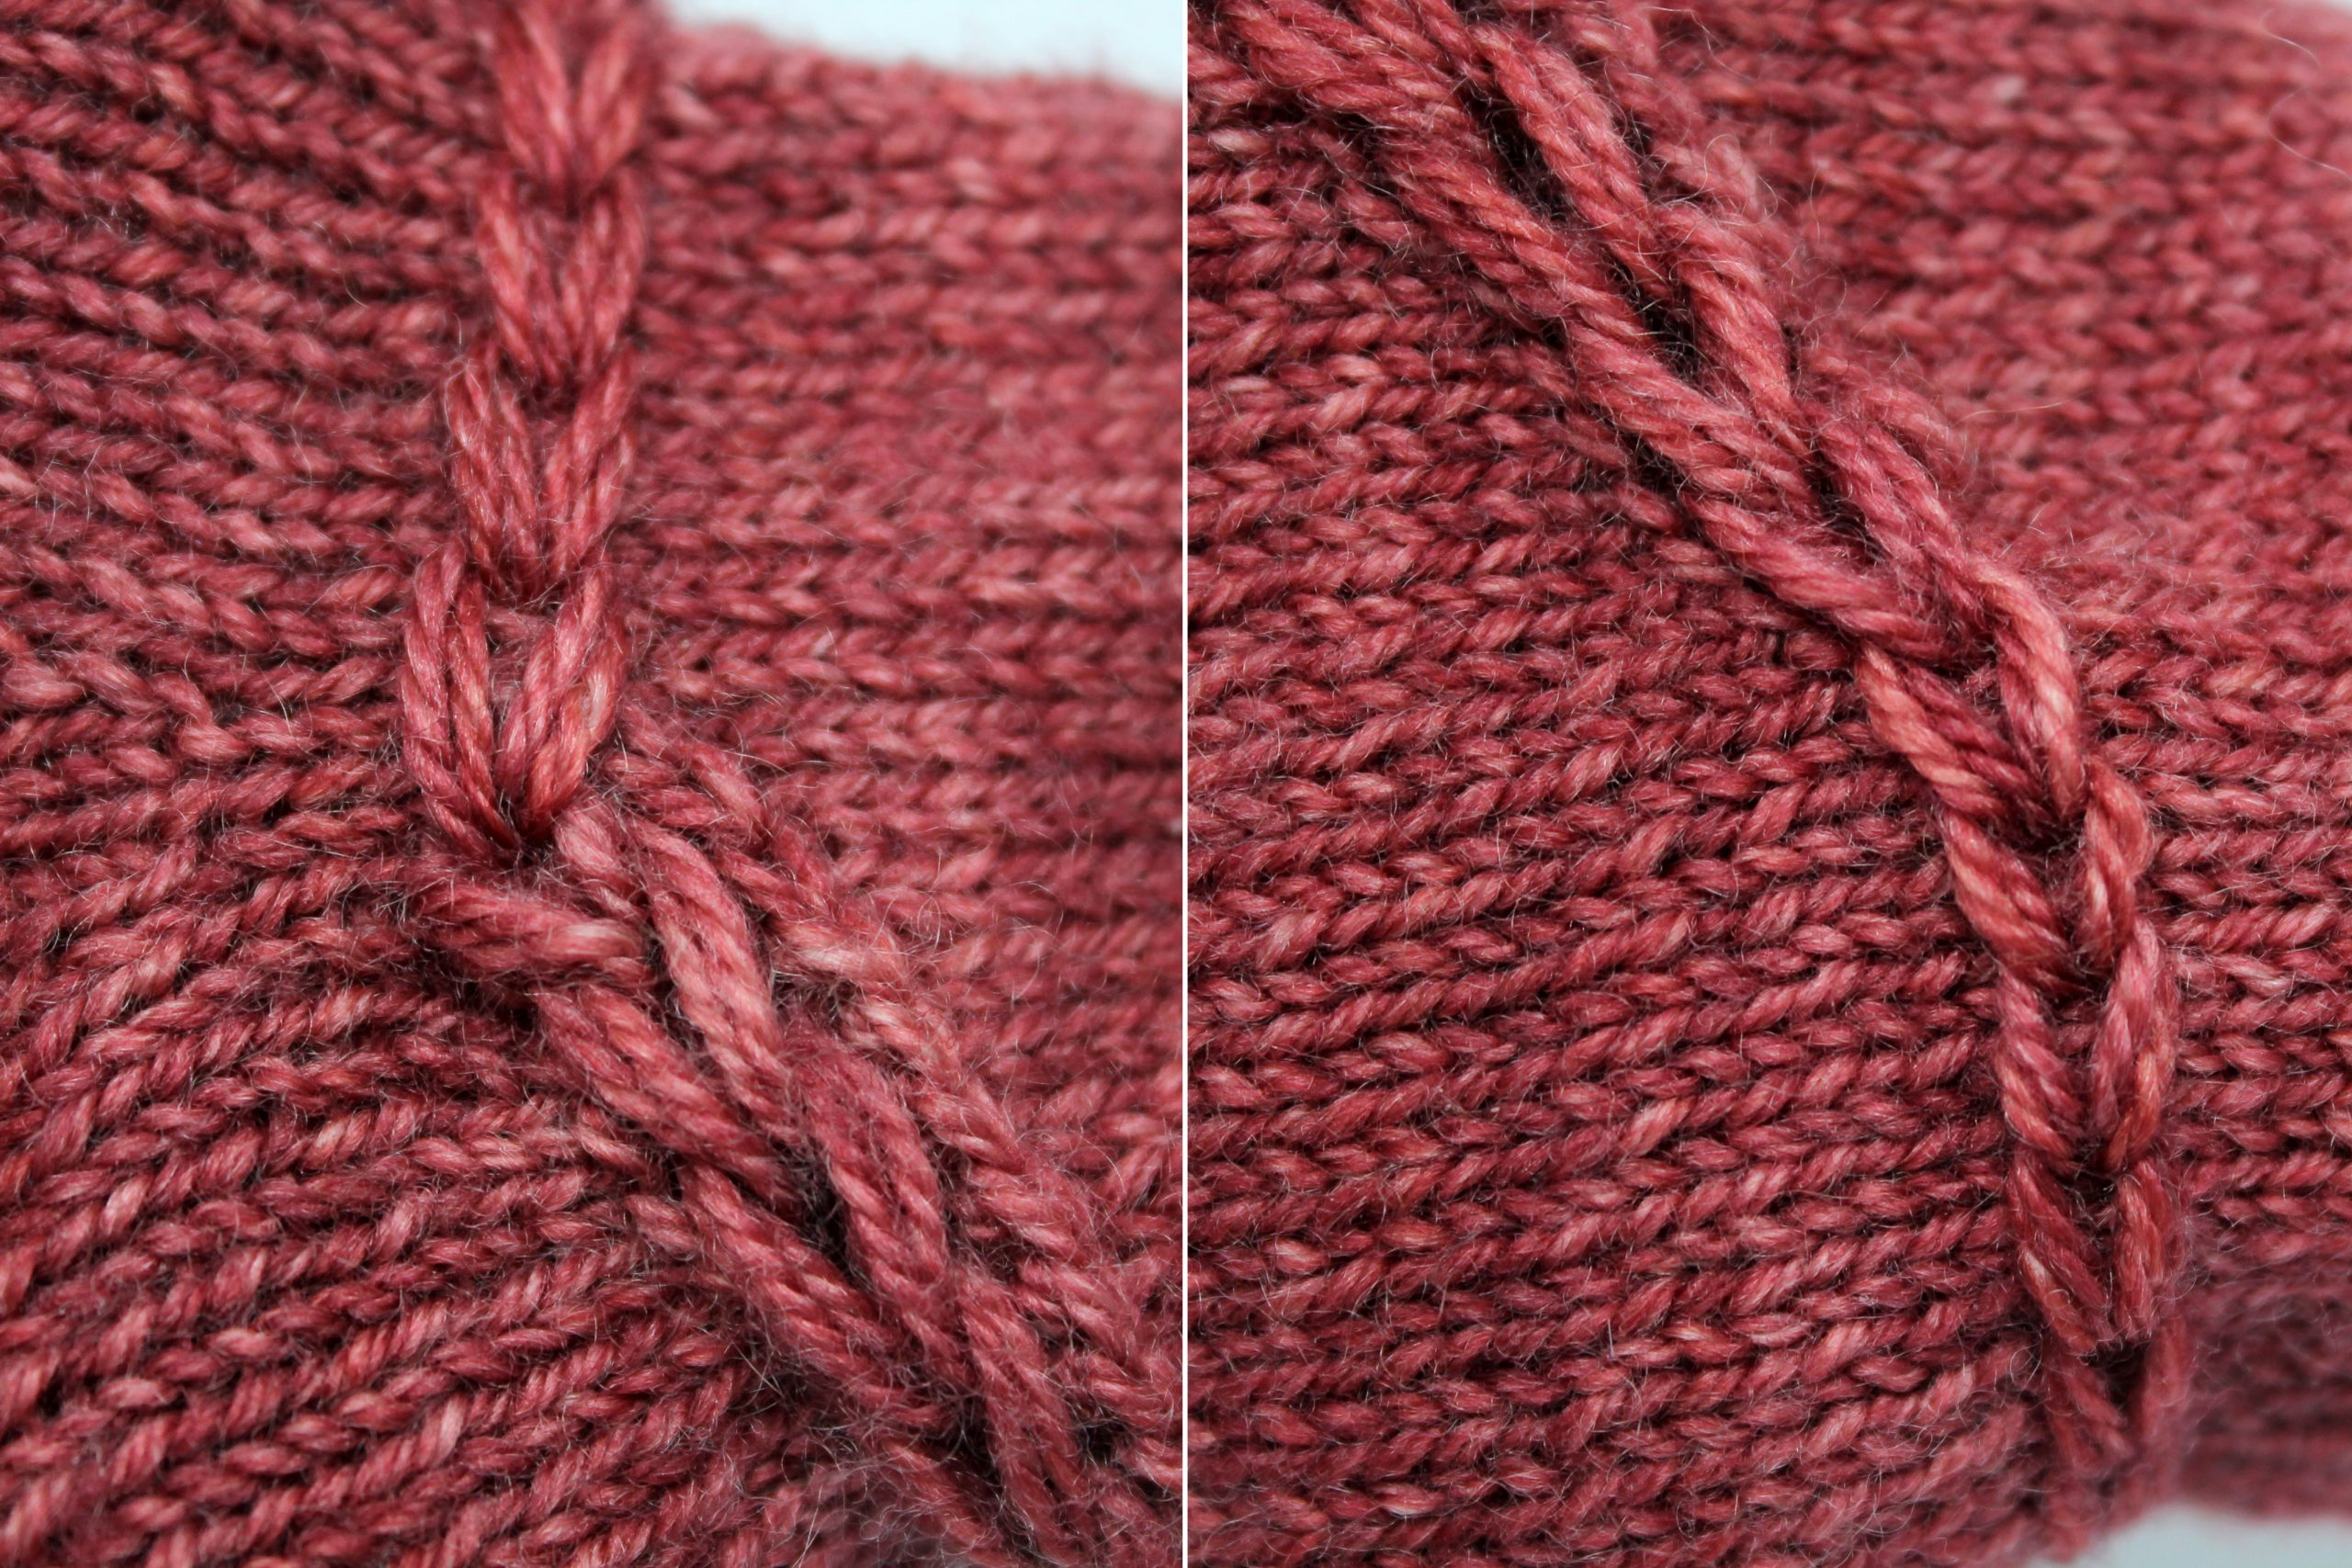 Close ups of the finished chain stitch showing how it joins to the dropped stitch braid at each end